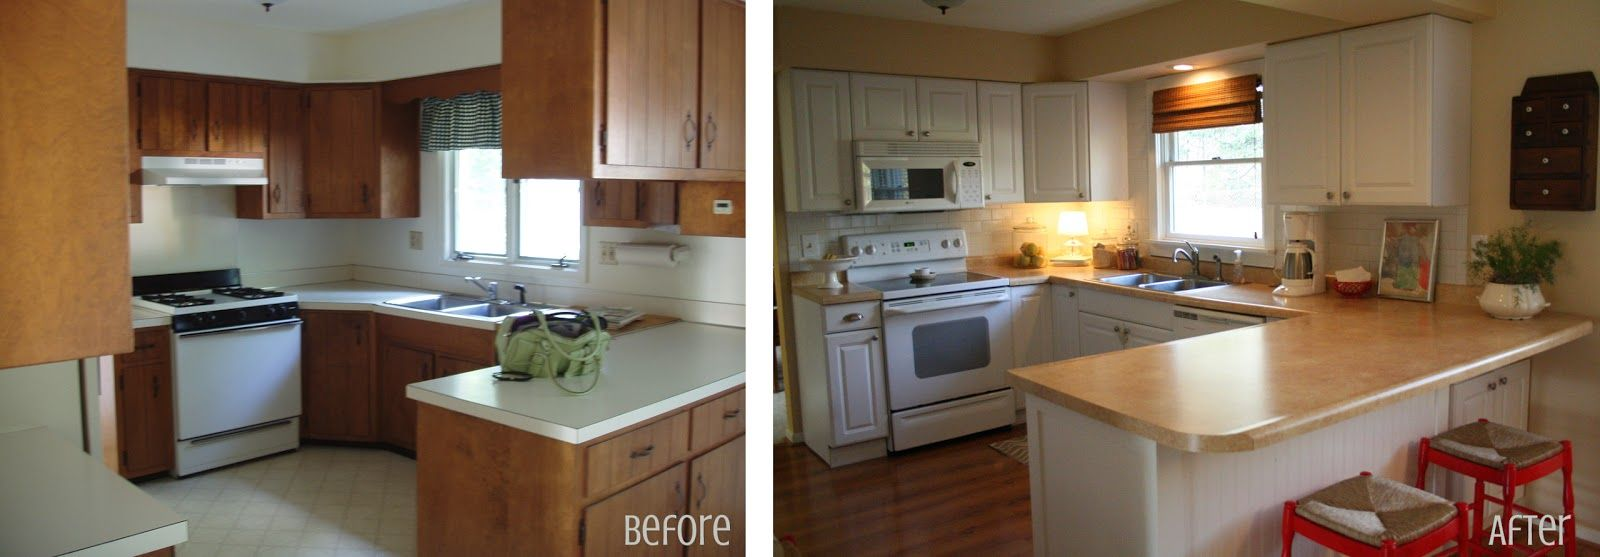 Small Kitchen Remodel Before And After Http Www Limosmart Ideas We Are Showing You Some